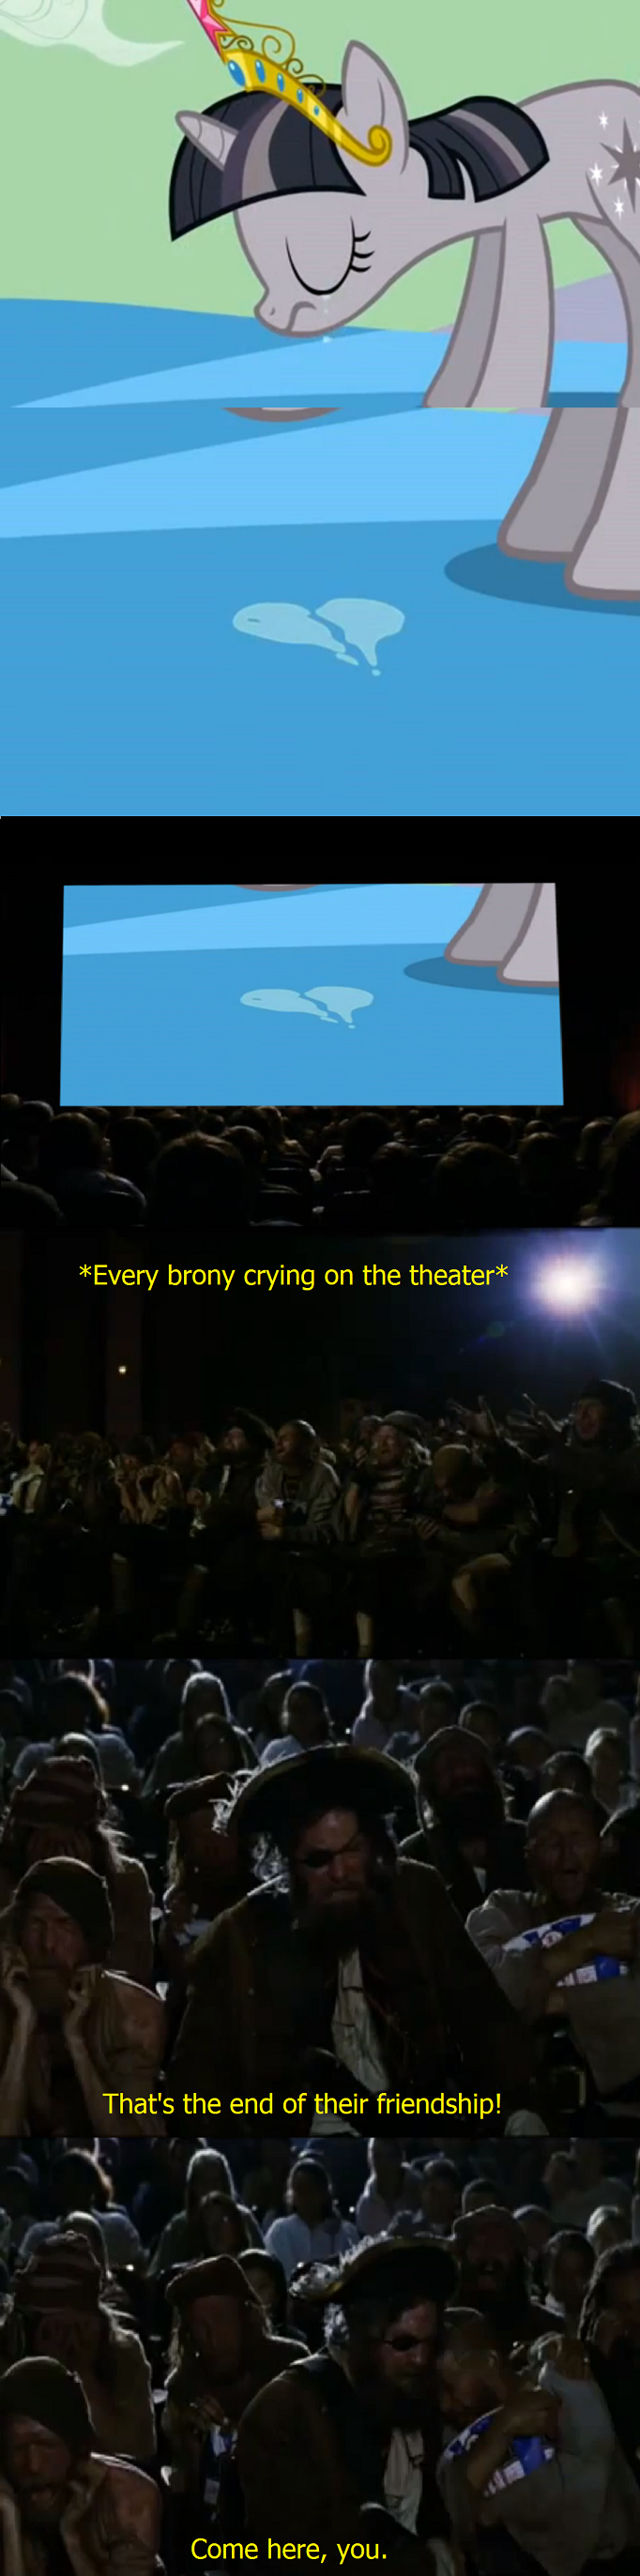 Every brony reaction to this scene. How touching.. i don't even like ponys, but i had to thumb for the spongbob movie referance cause i love that movie